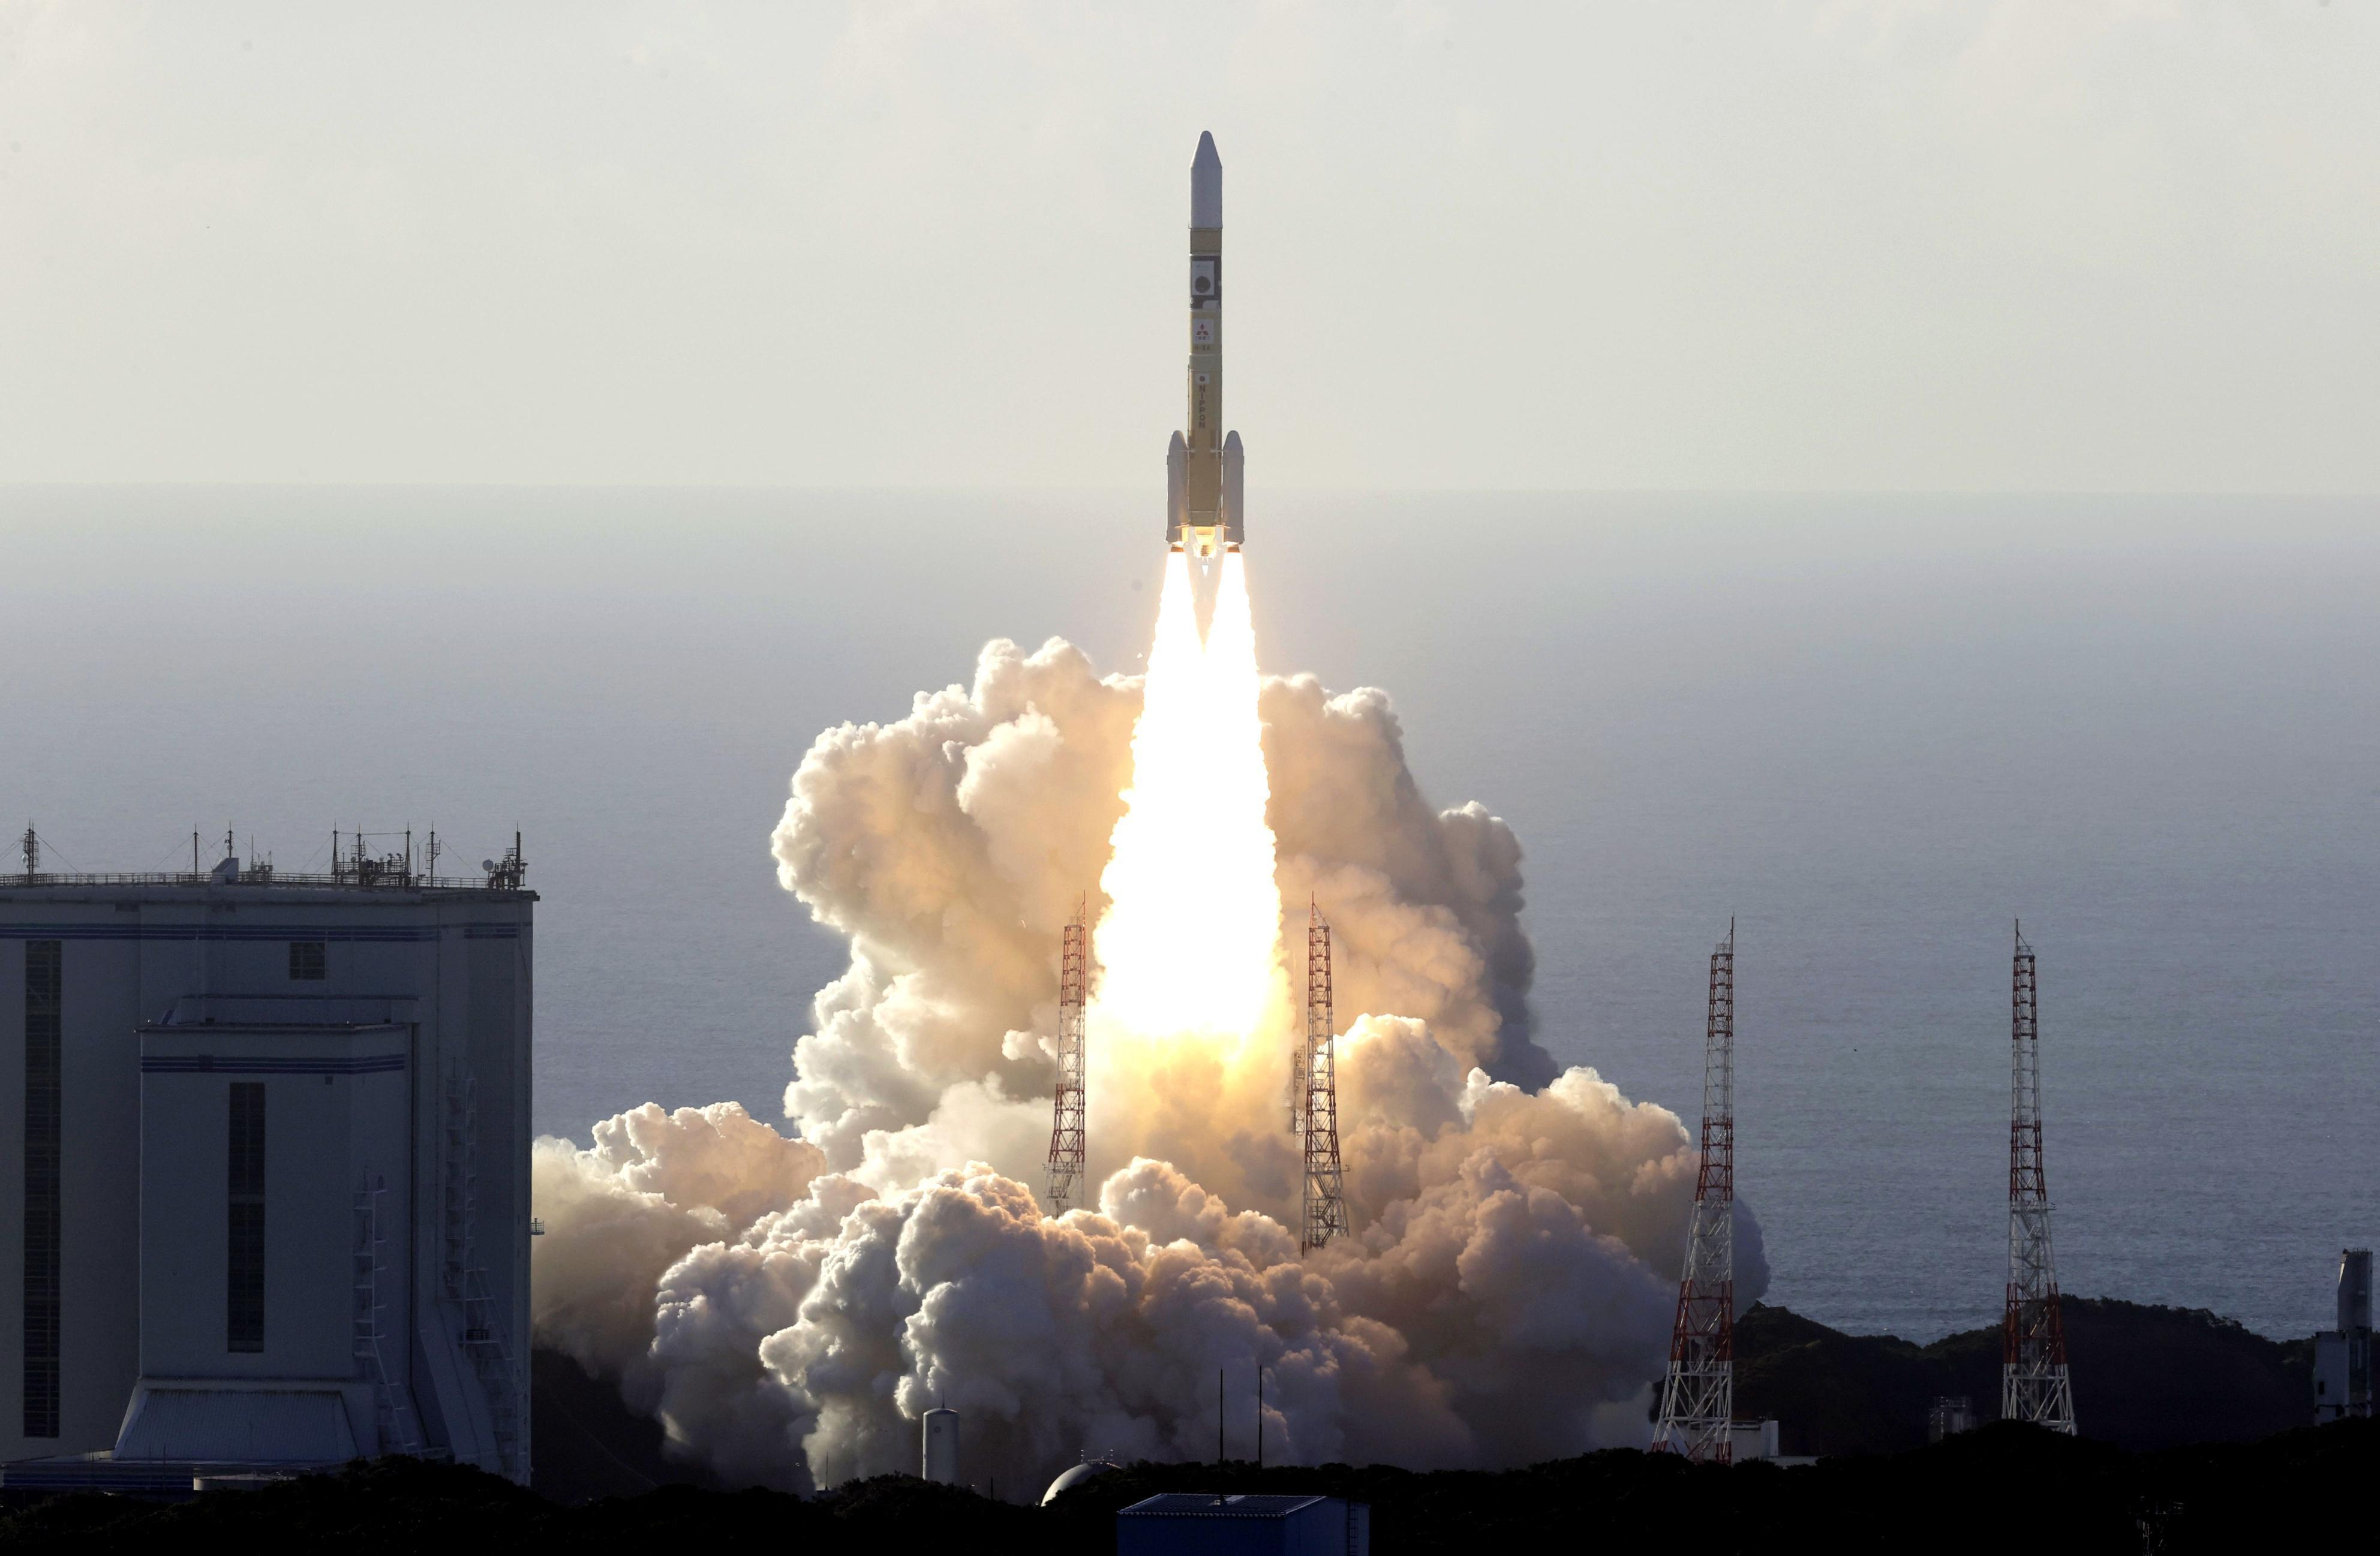 A Mars mission just launched, but it's not from NASA